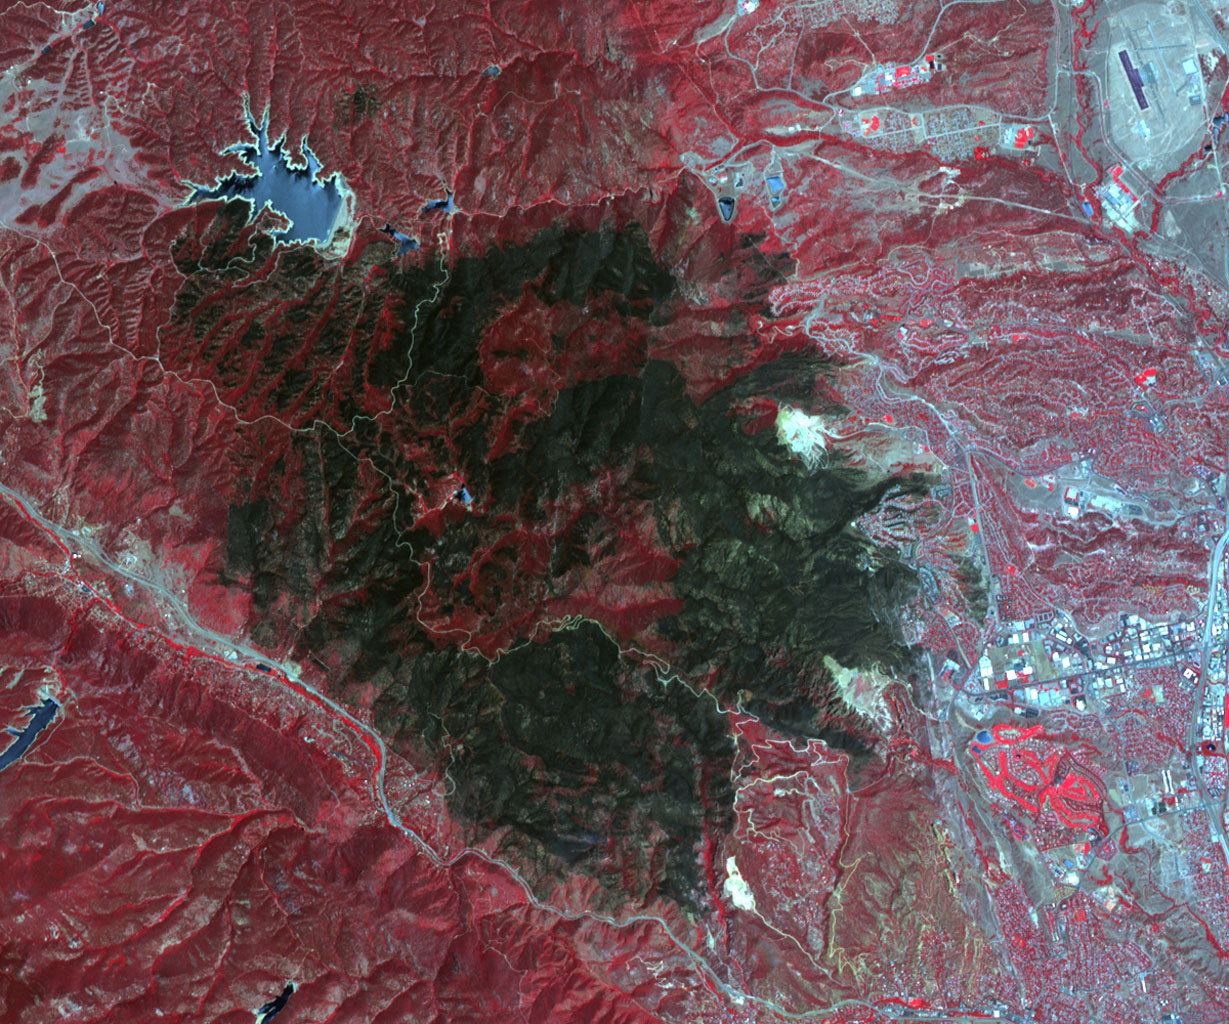 NASA's Terra spacecraft acquired this image of the Waldo Canyon Fire, west of Colorado Springs, Colo., being called the worst fire in Colorado history. Healthy vegetation is red, water is dark blue, streets and buildings are gray, and the burned areas are